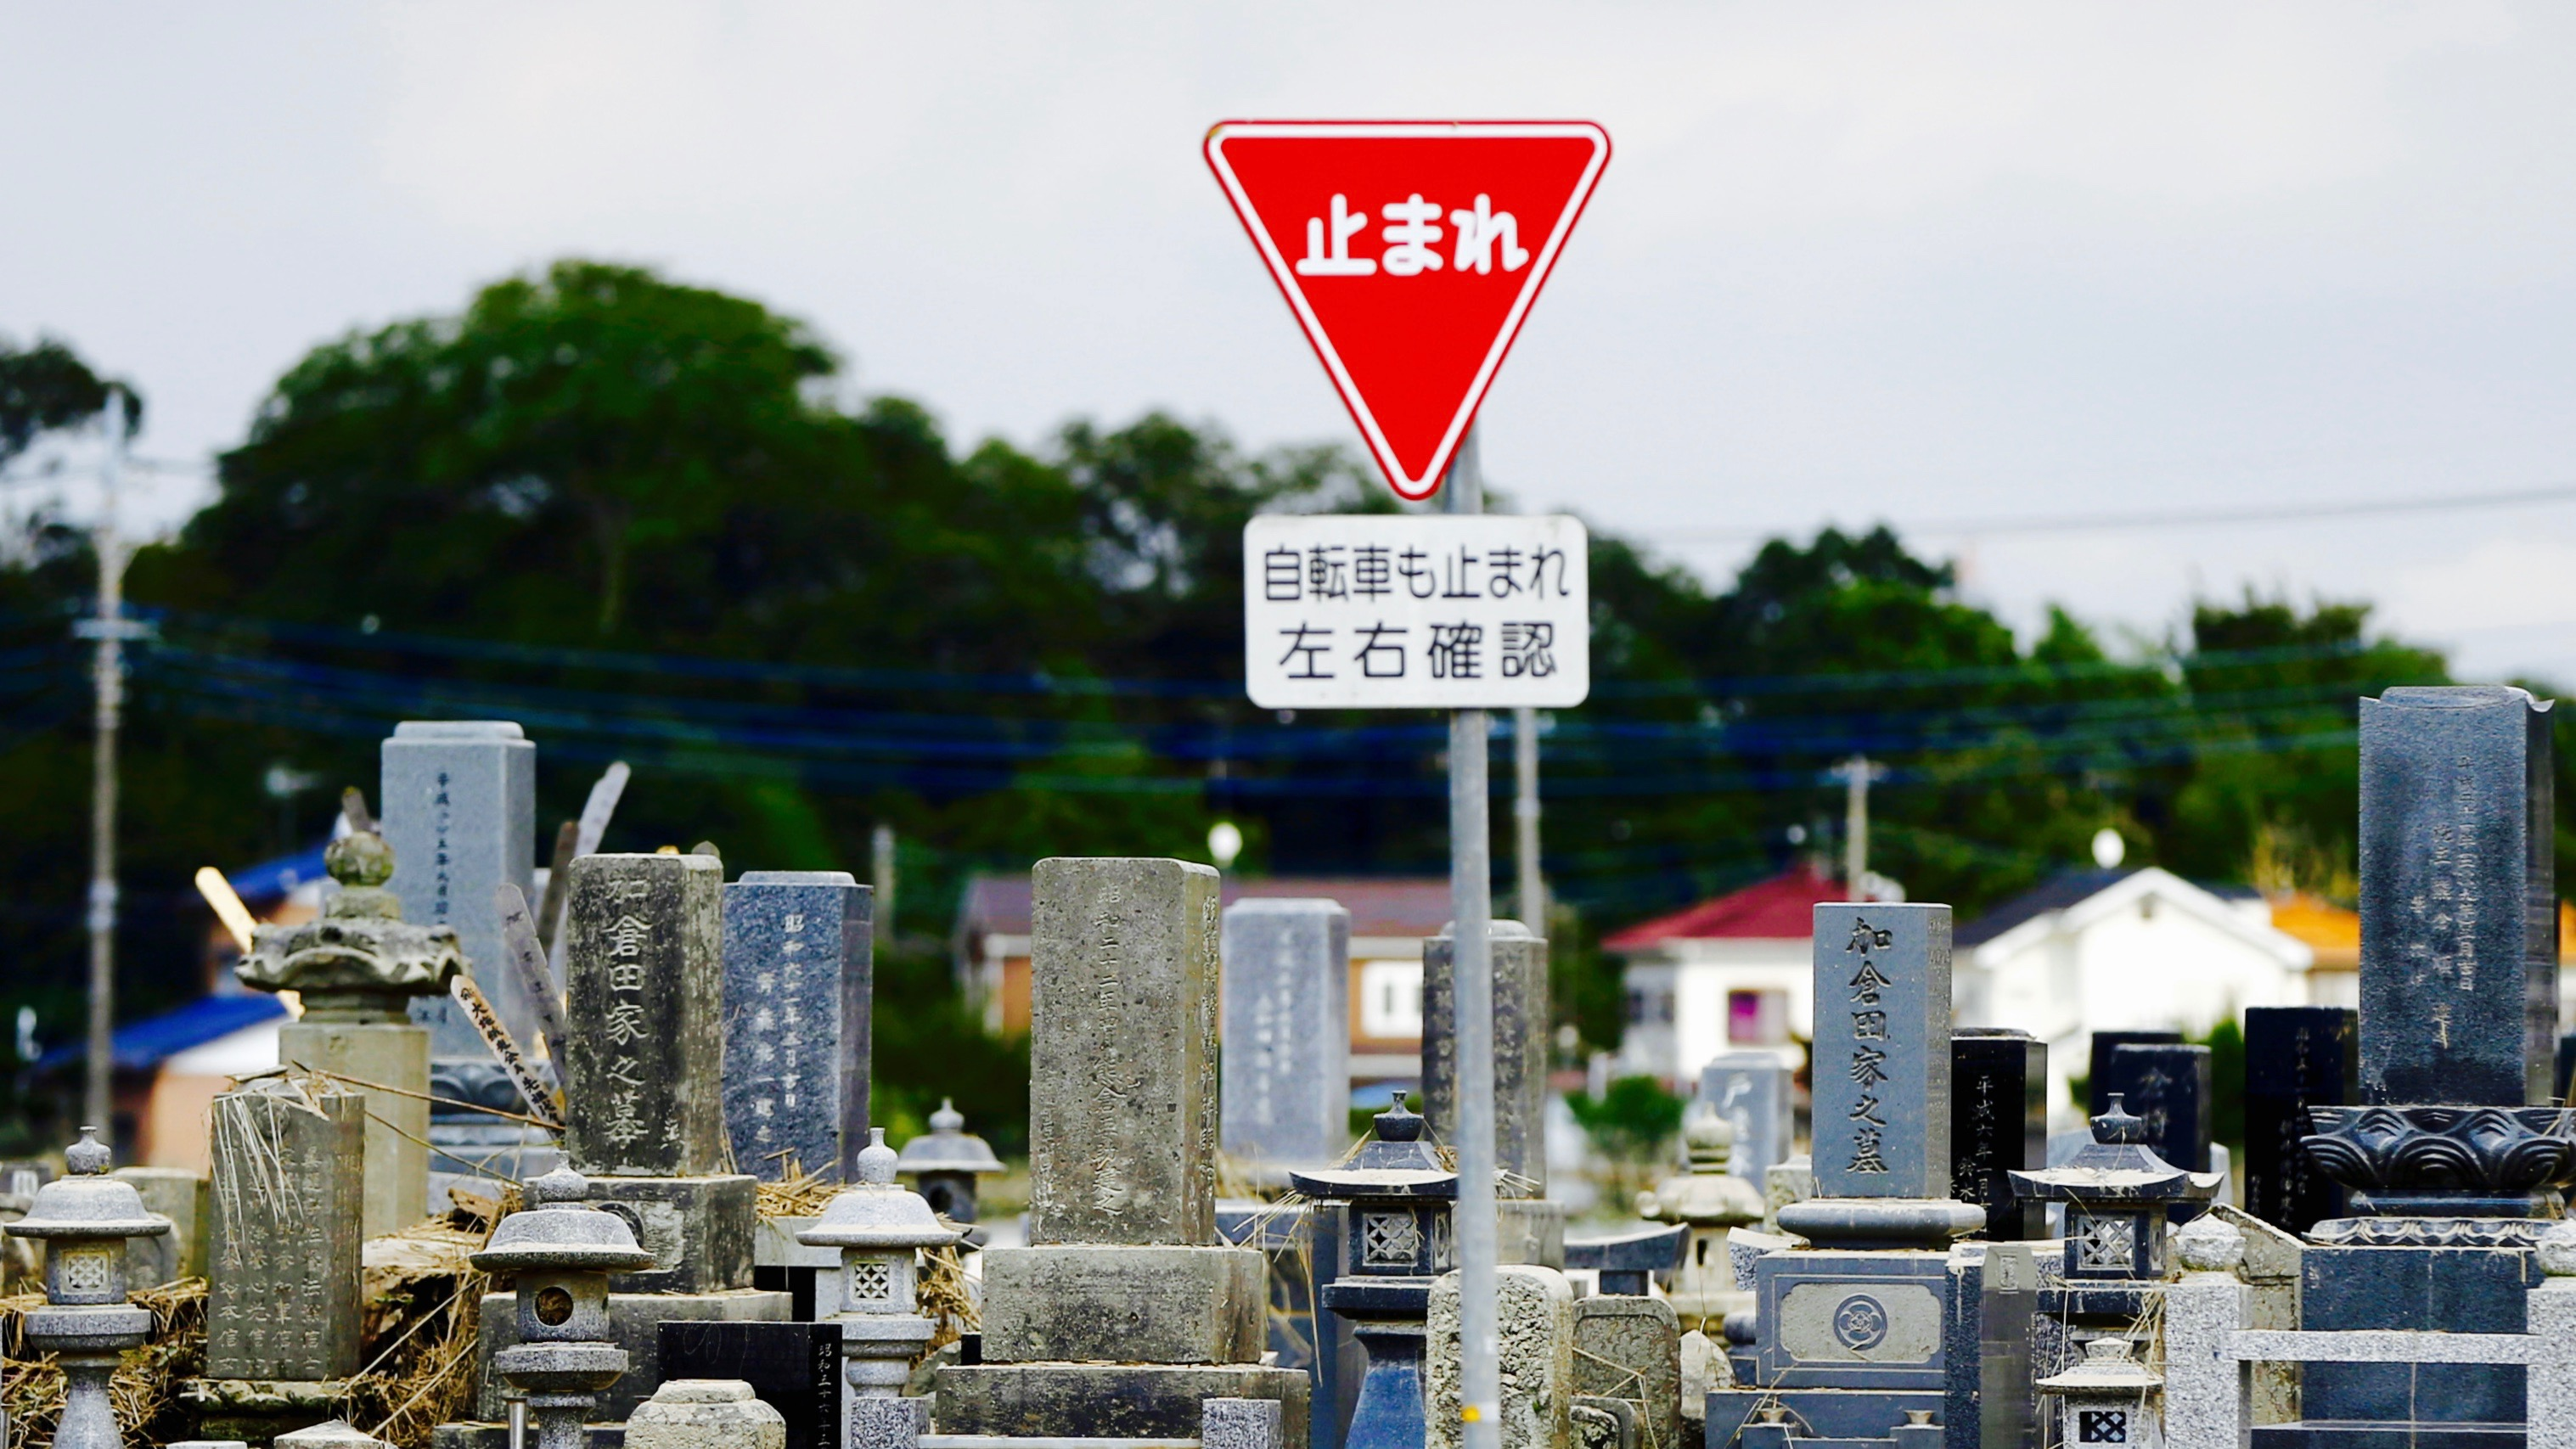 Stop sign by a cemetery in Japan.